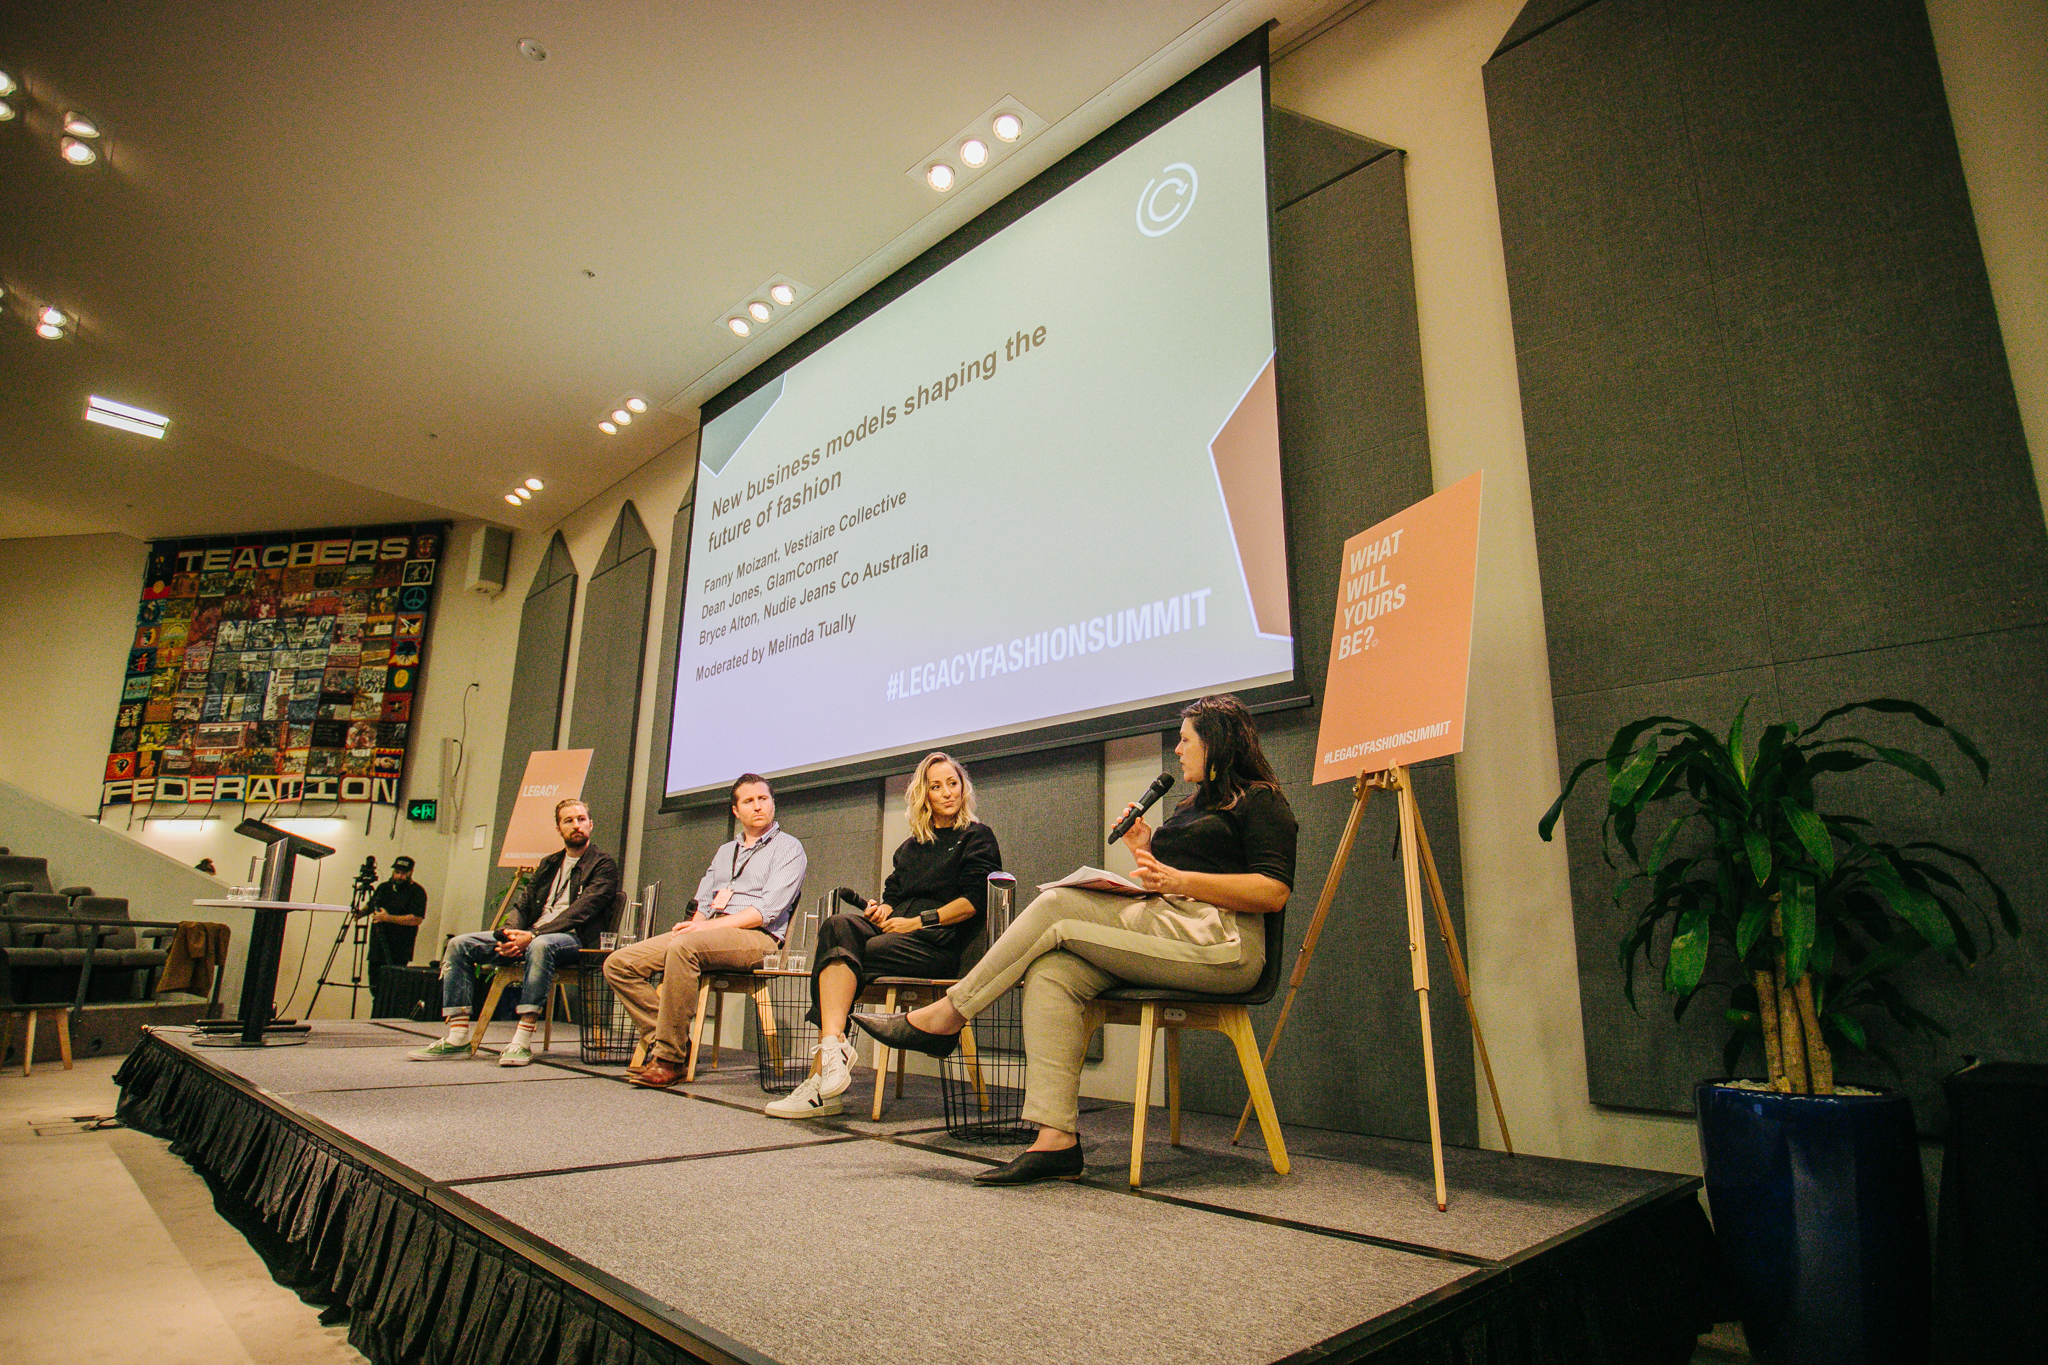 New business models shaping the future of fashion panel 3.jpg